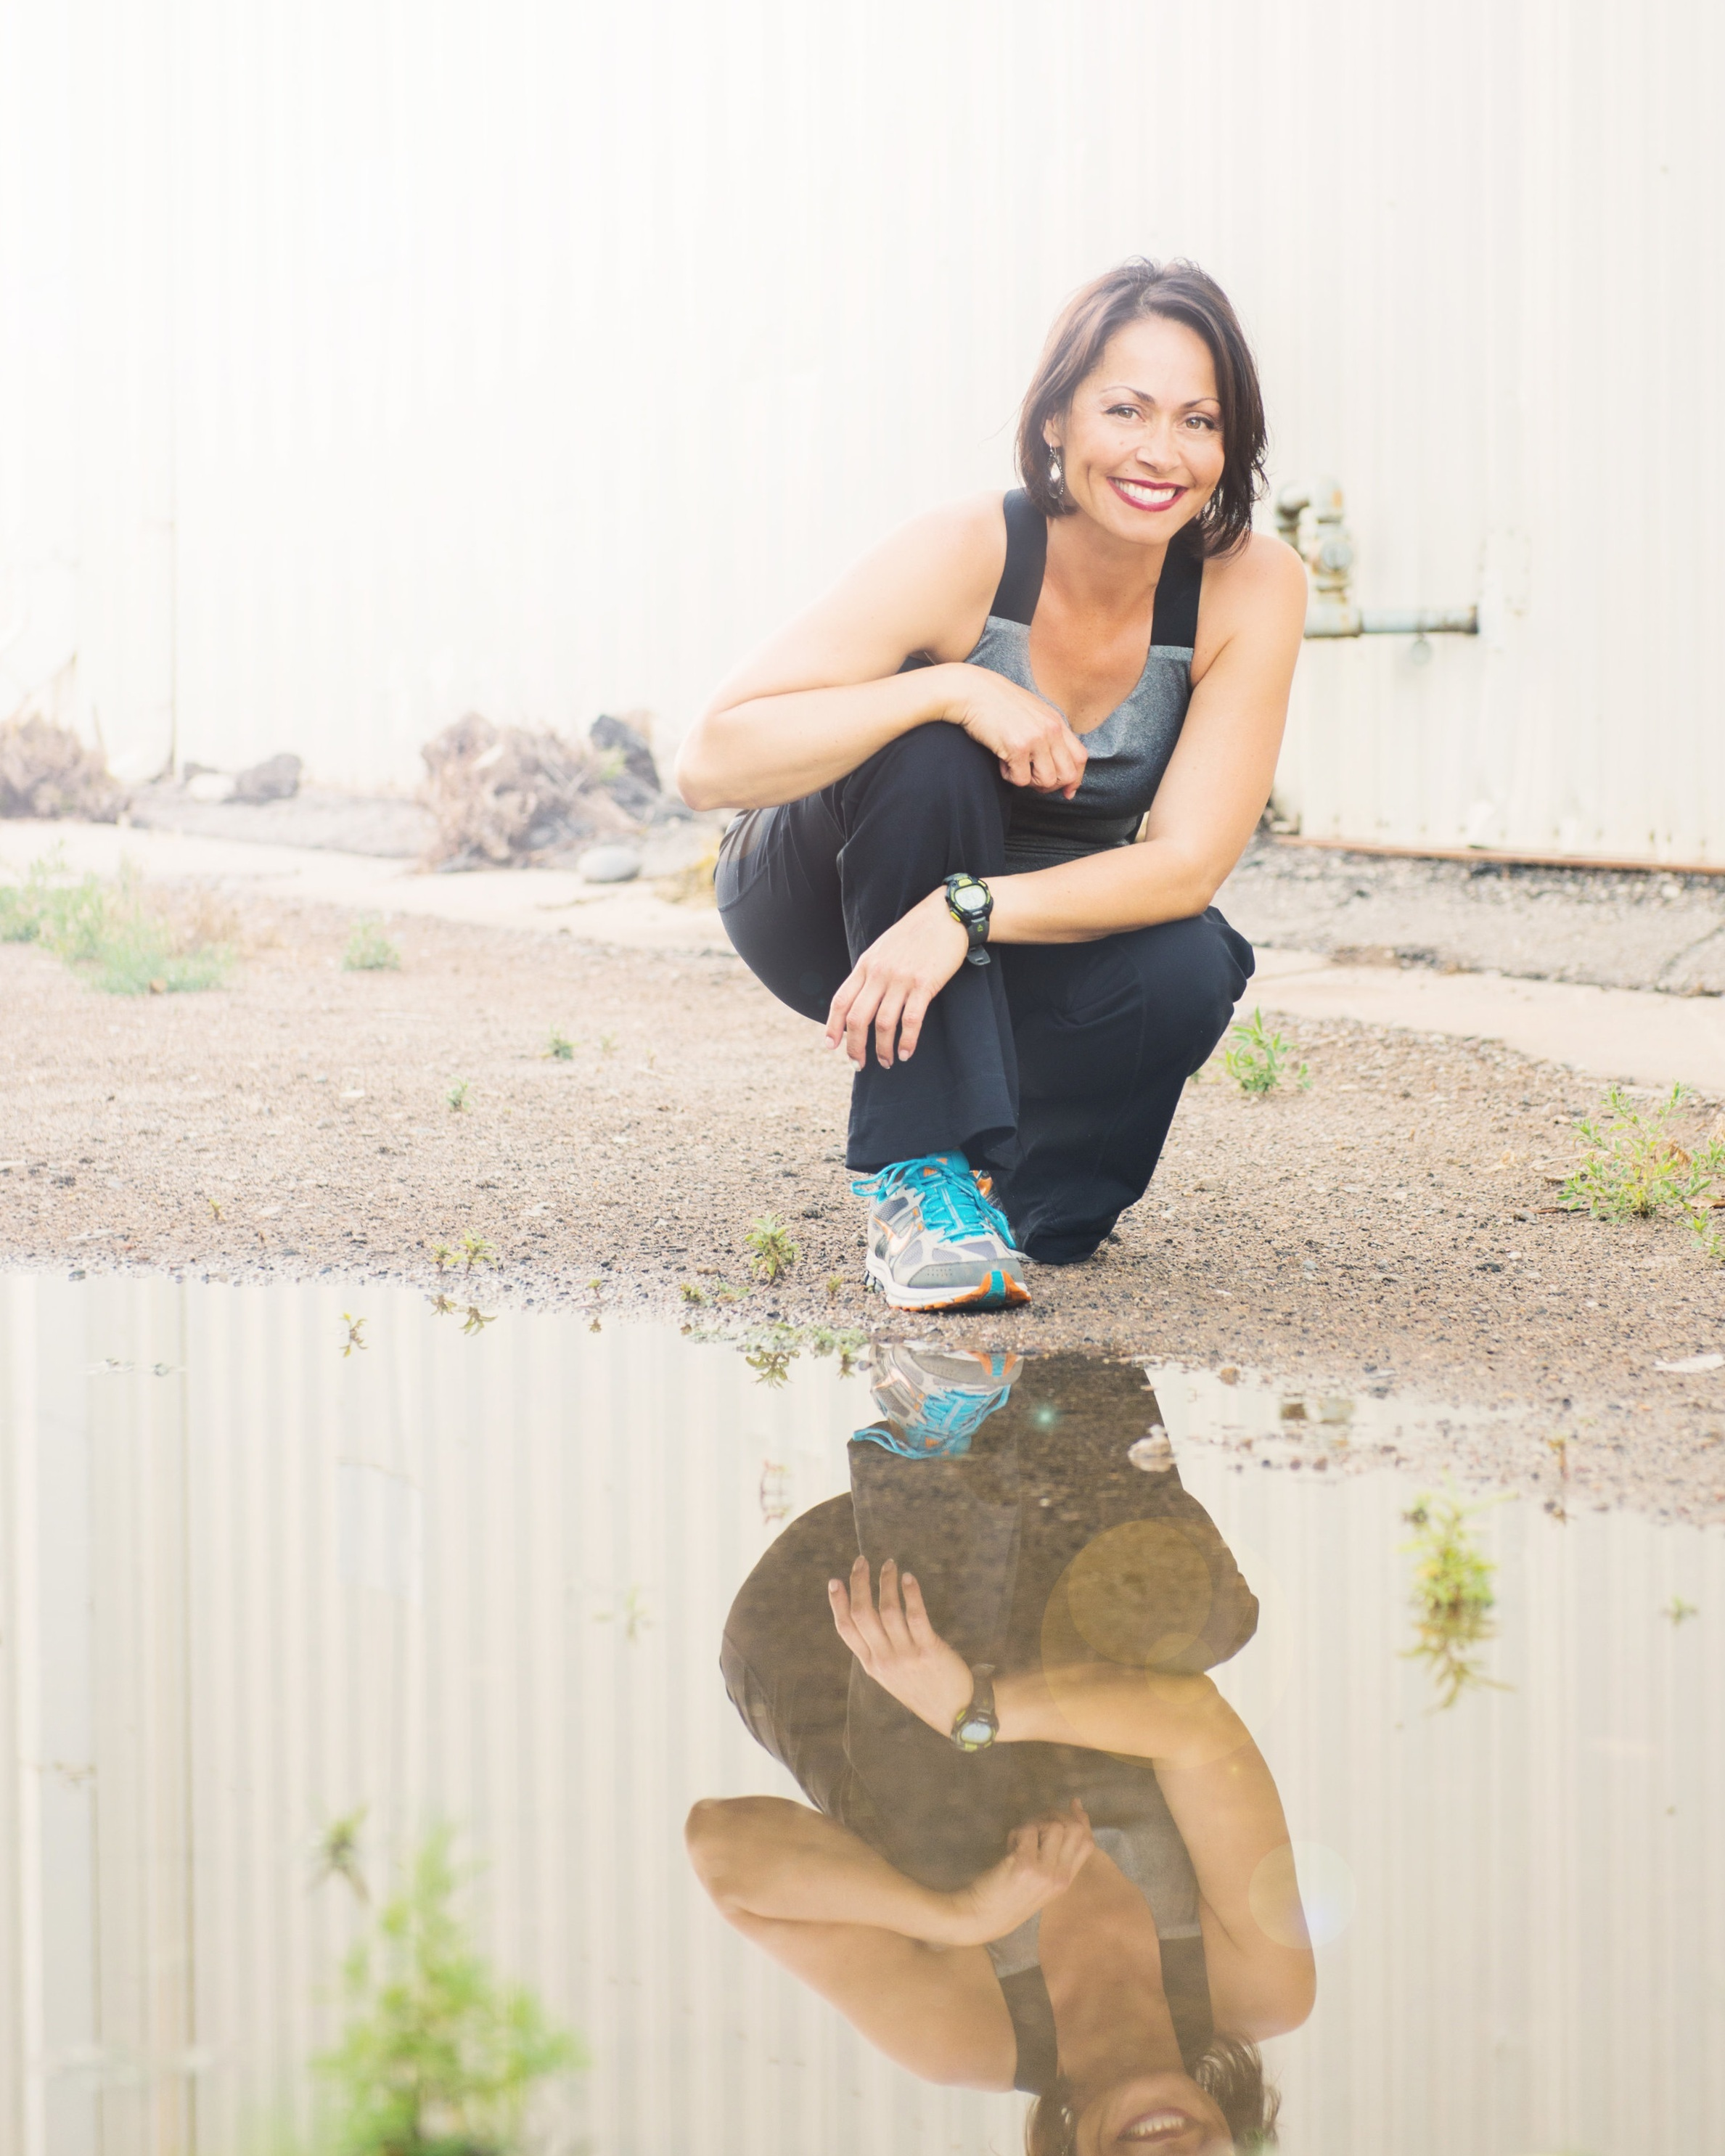 Pamela Otero, Owner & Running Coach  ACSM Certified Personal Trainer, RRCA Certified Running Coach and Spinning® Certified Instructor